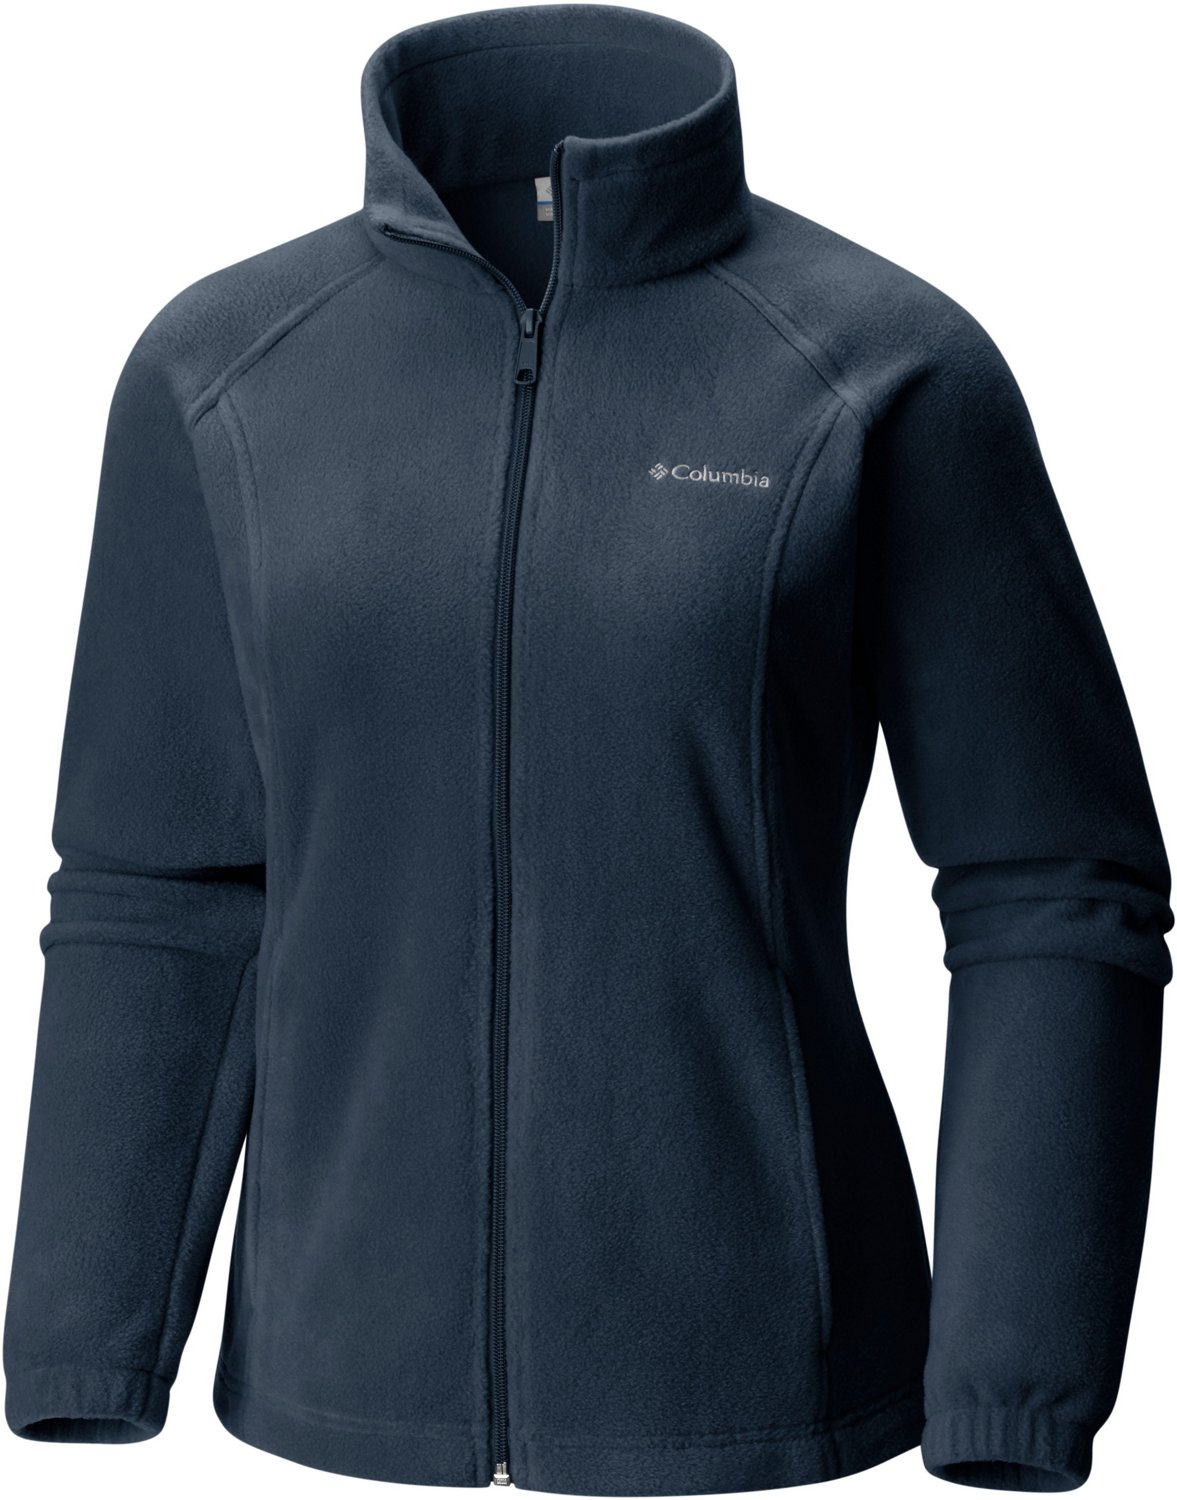 b17745a432ee Display product reviews for Columbia Sportswear Women s Benton Springs Full  Zip Fleece Jacket